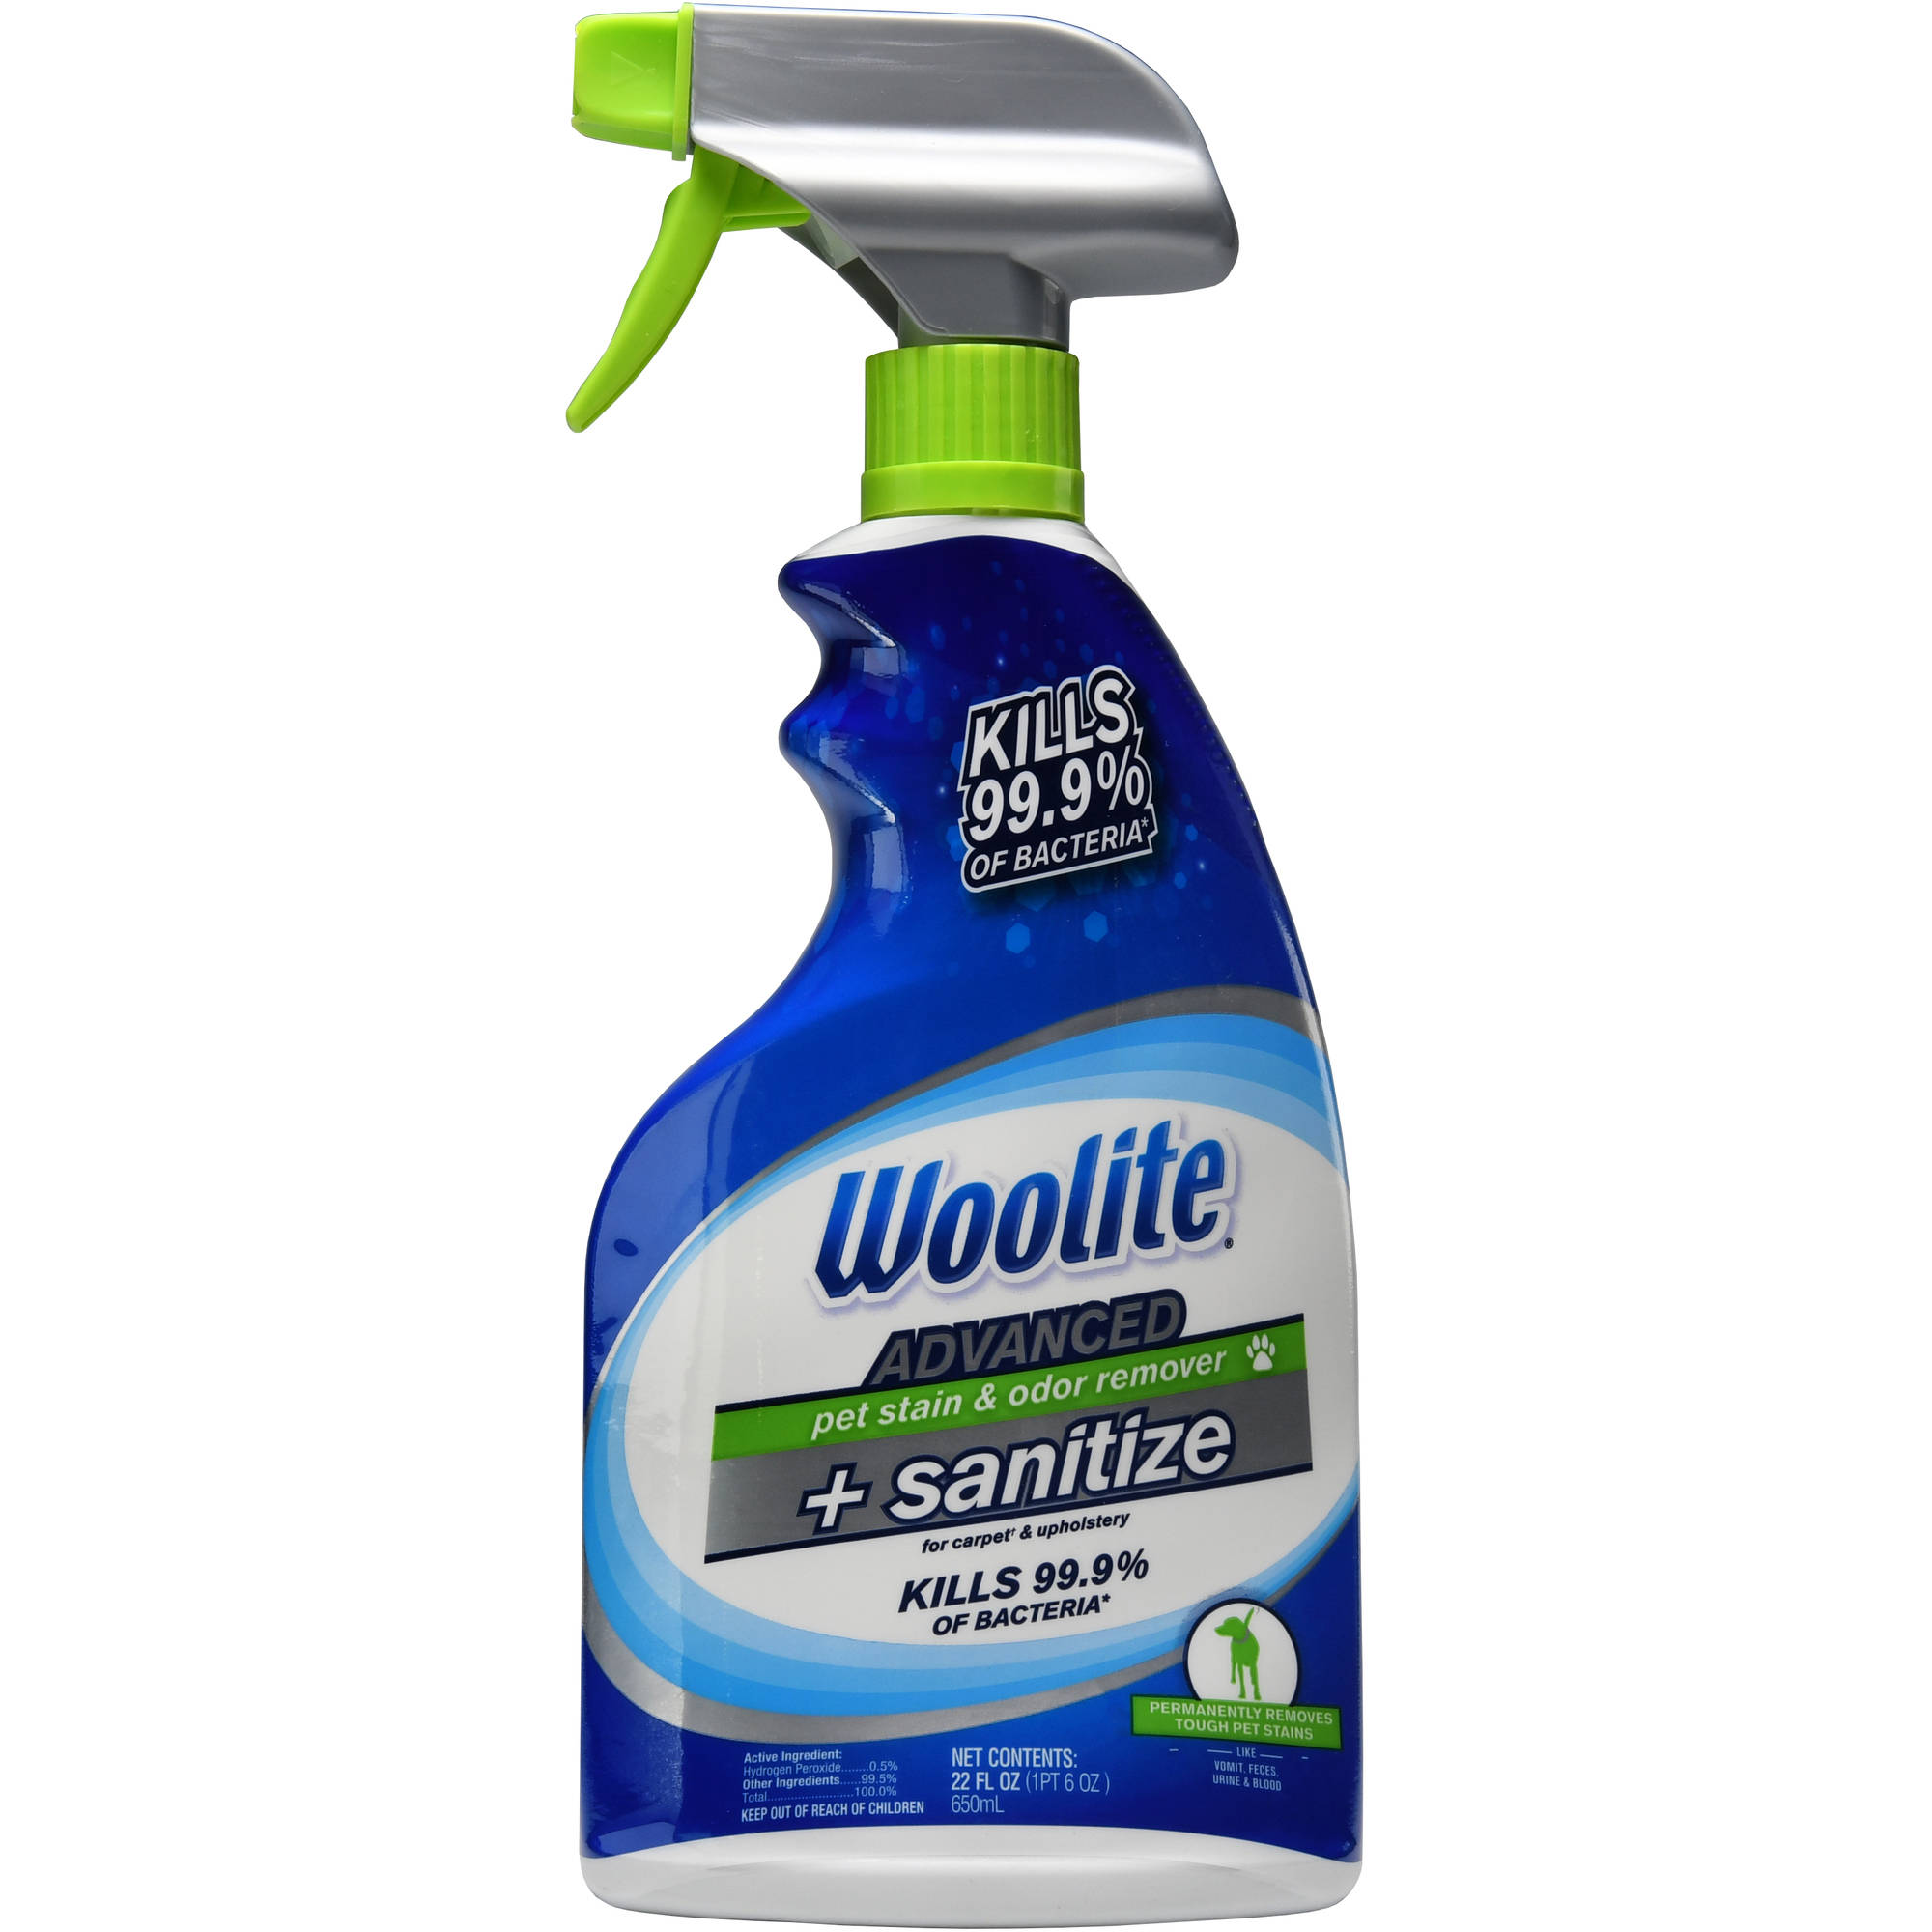 Woolite Advanced Pet Oxy Stain & Odor Remover, 22 fl oz